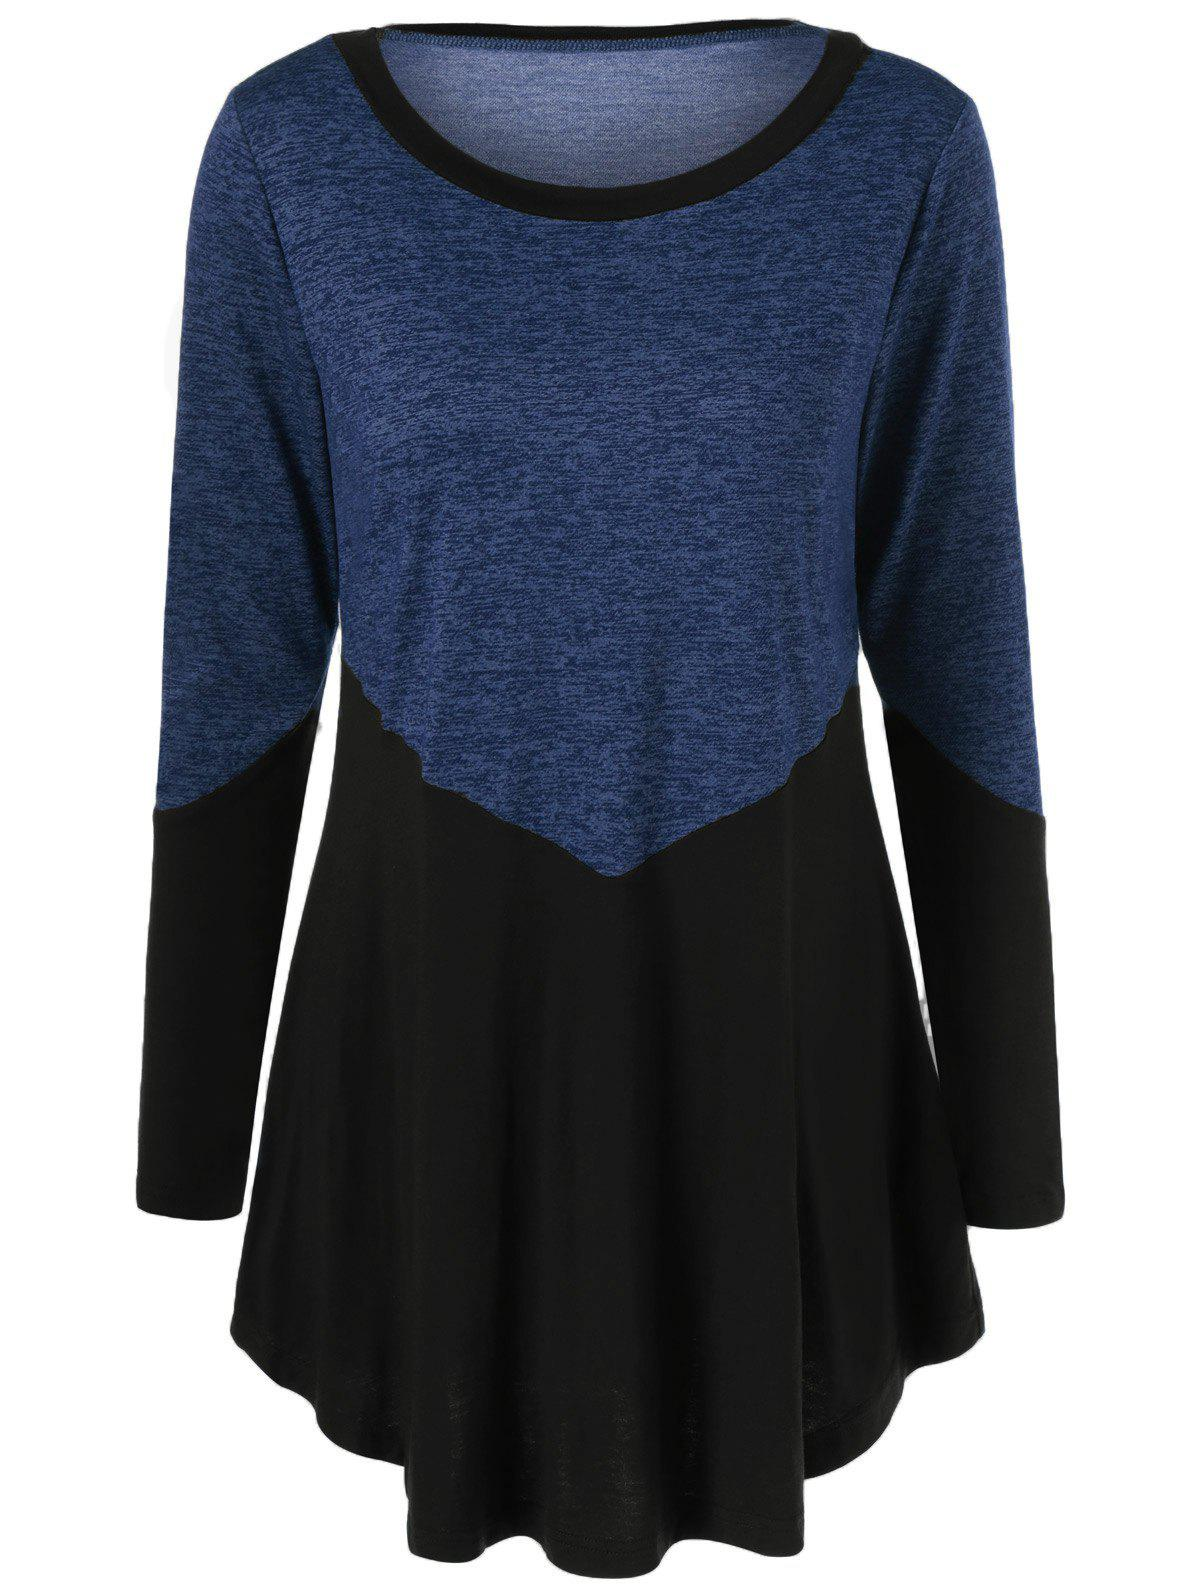 Patchwork Heather T-ShirtWOMEN<br><br>Size: L; Color: BLACK; Material: Rayon; Sleeve Length: Full; Collar: Scoop Neck; Style: Casual; Pattern Type: Others; Season: Fall,Spring; Weight: 0.3700kg; Package Contents: 1 x T-Shirt;